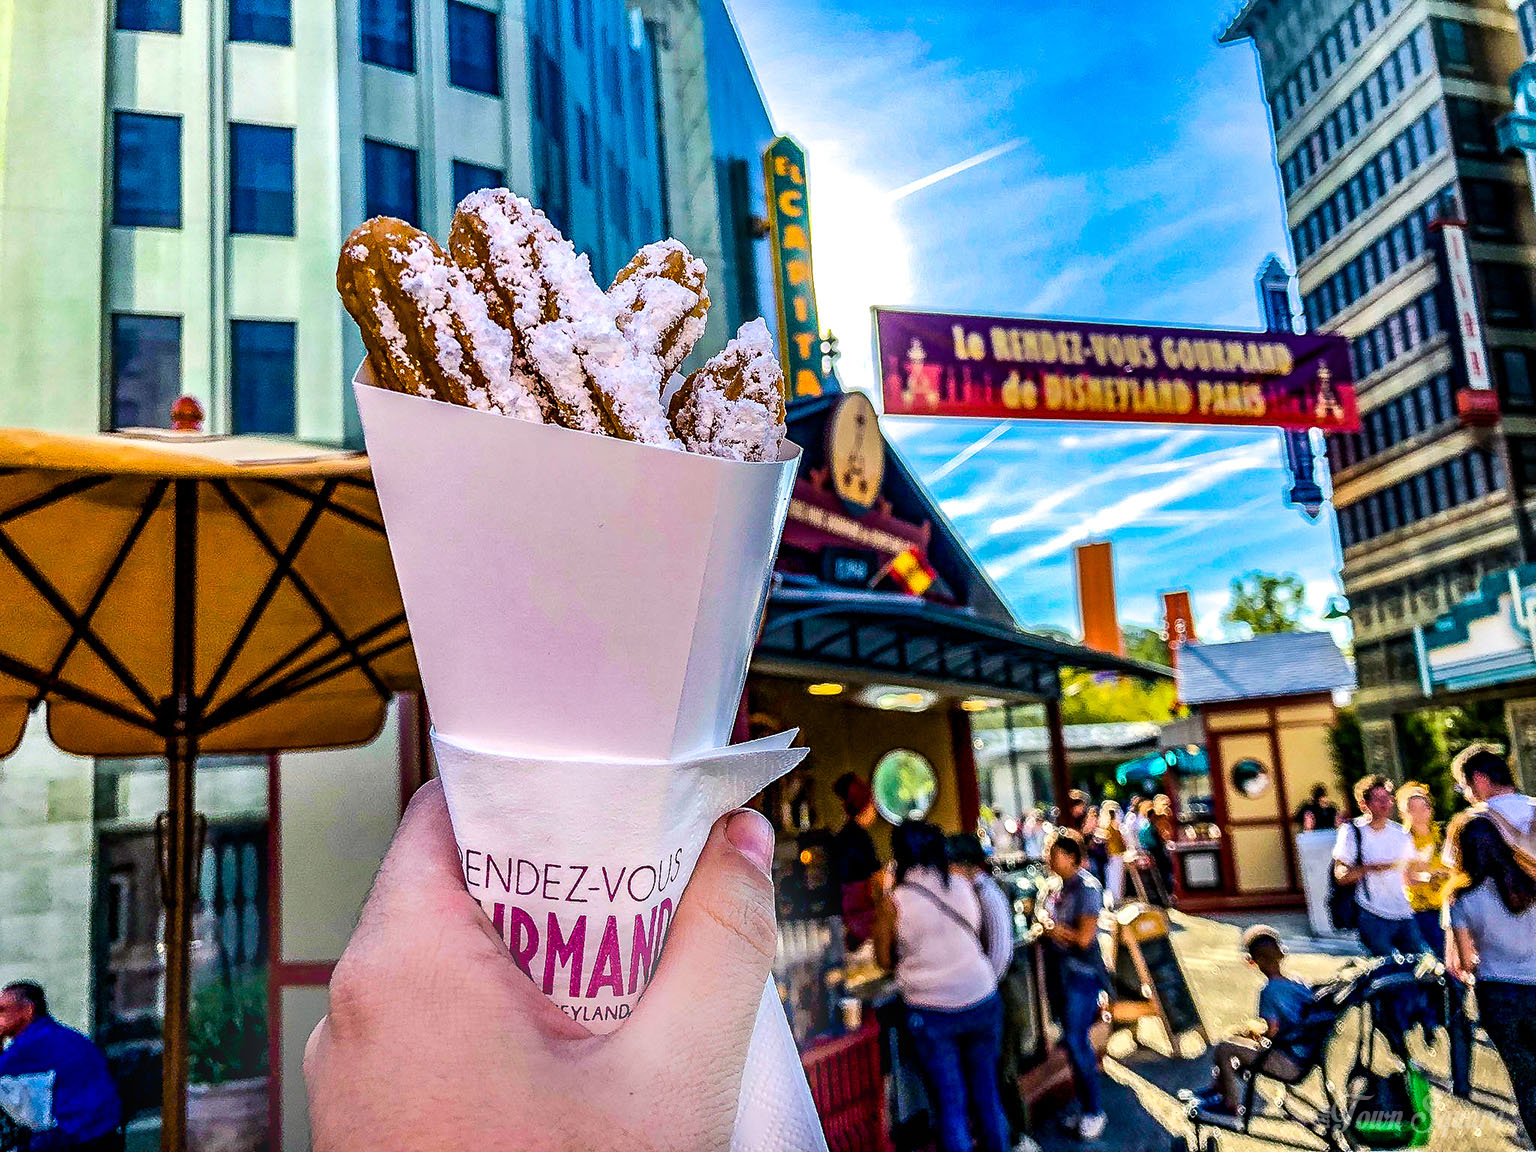 Churros at the Rendez-Vous Gourmand 2018 in Disneyland Paris